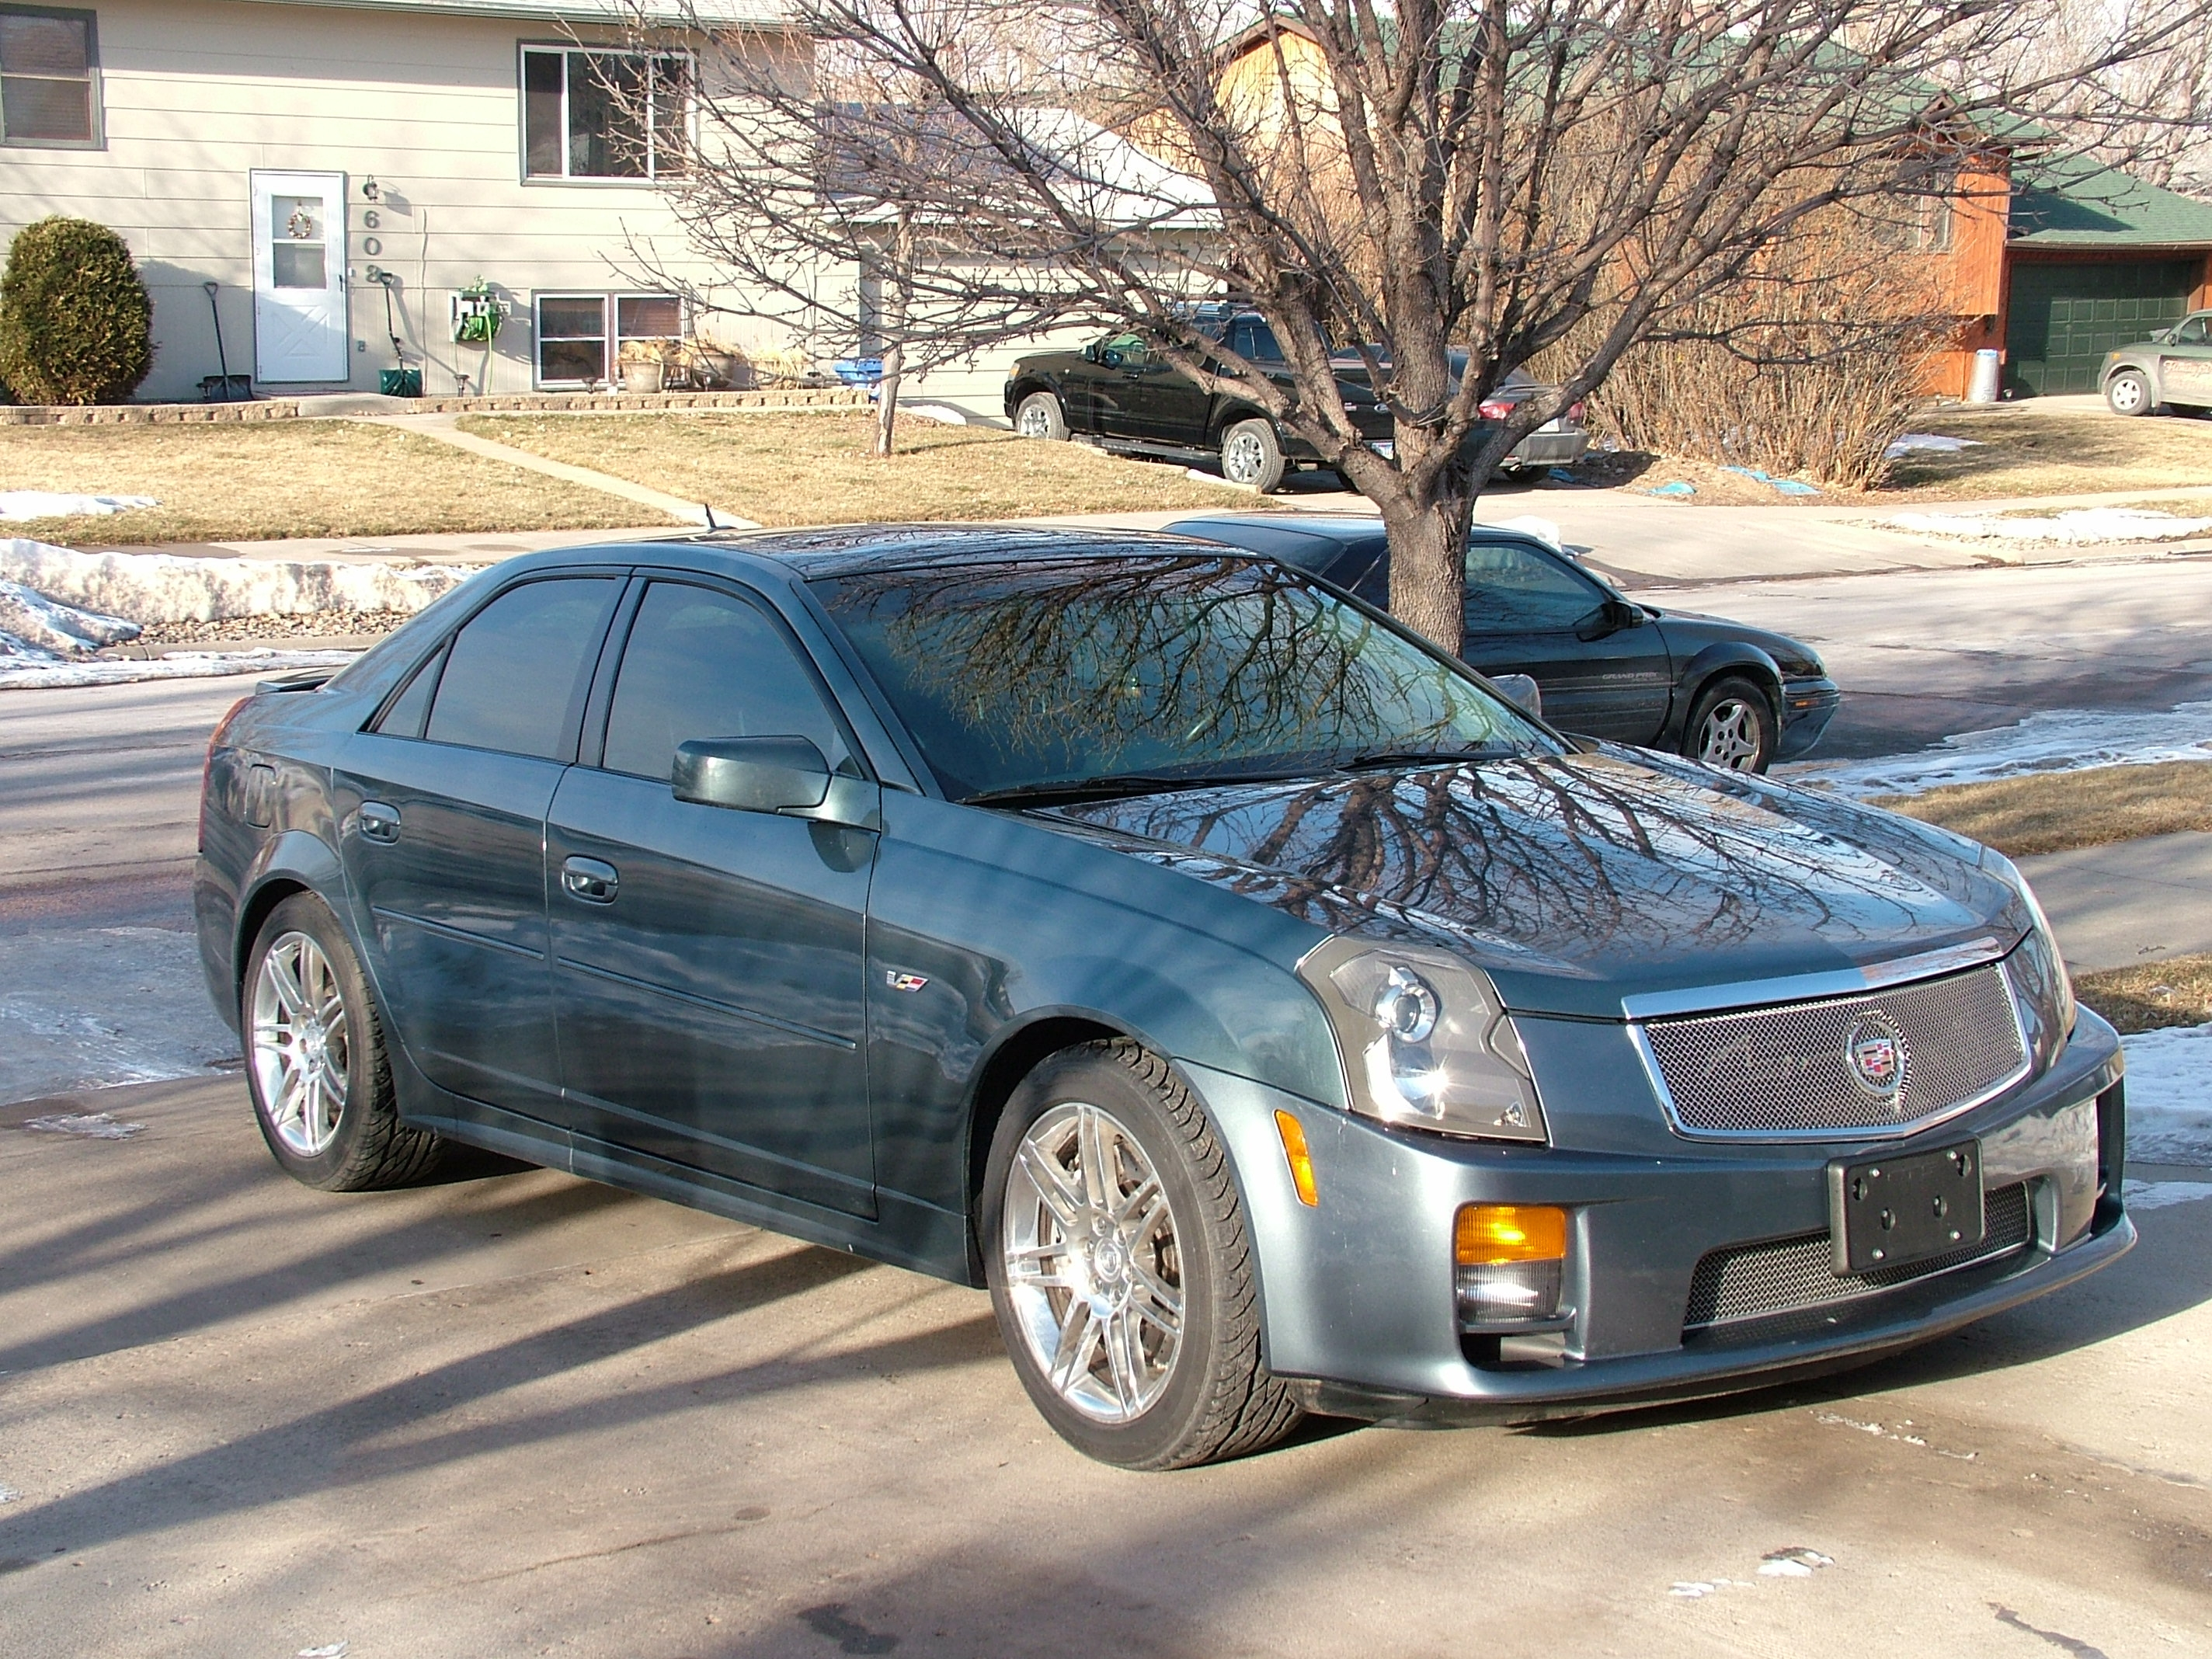 cosmoso4 39 s 2005 cadillac cts in rapid city sd. Black Bedroom Furniture Sets. Home Design Ideas